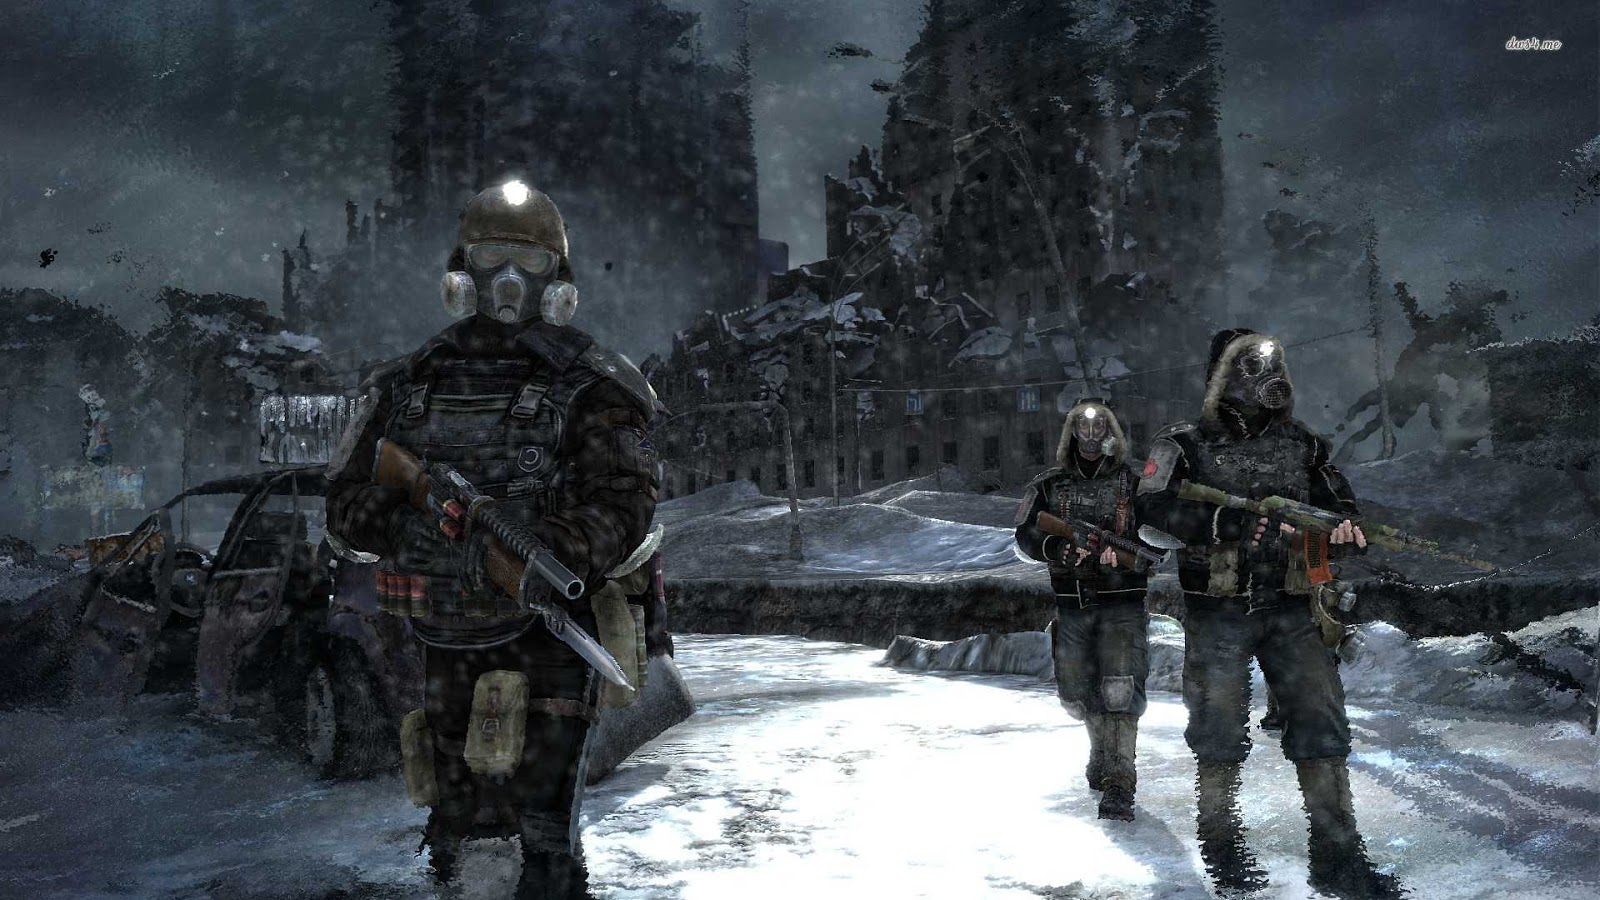 Wallpapers HD Wallpapers Metro Last Light   Game 2013 1600x900